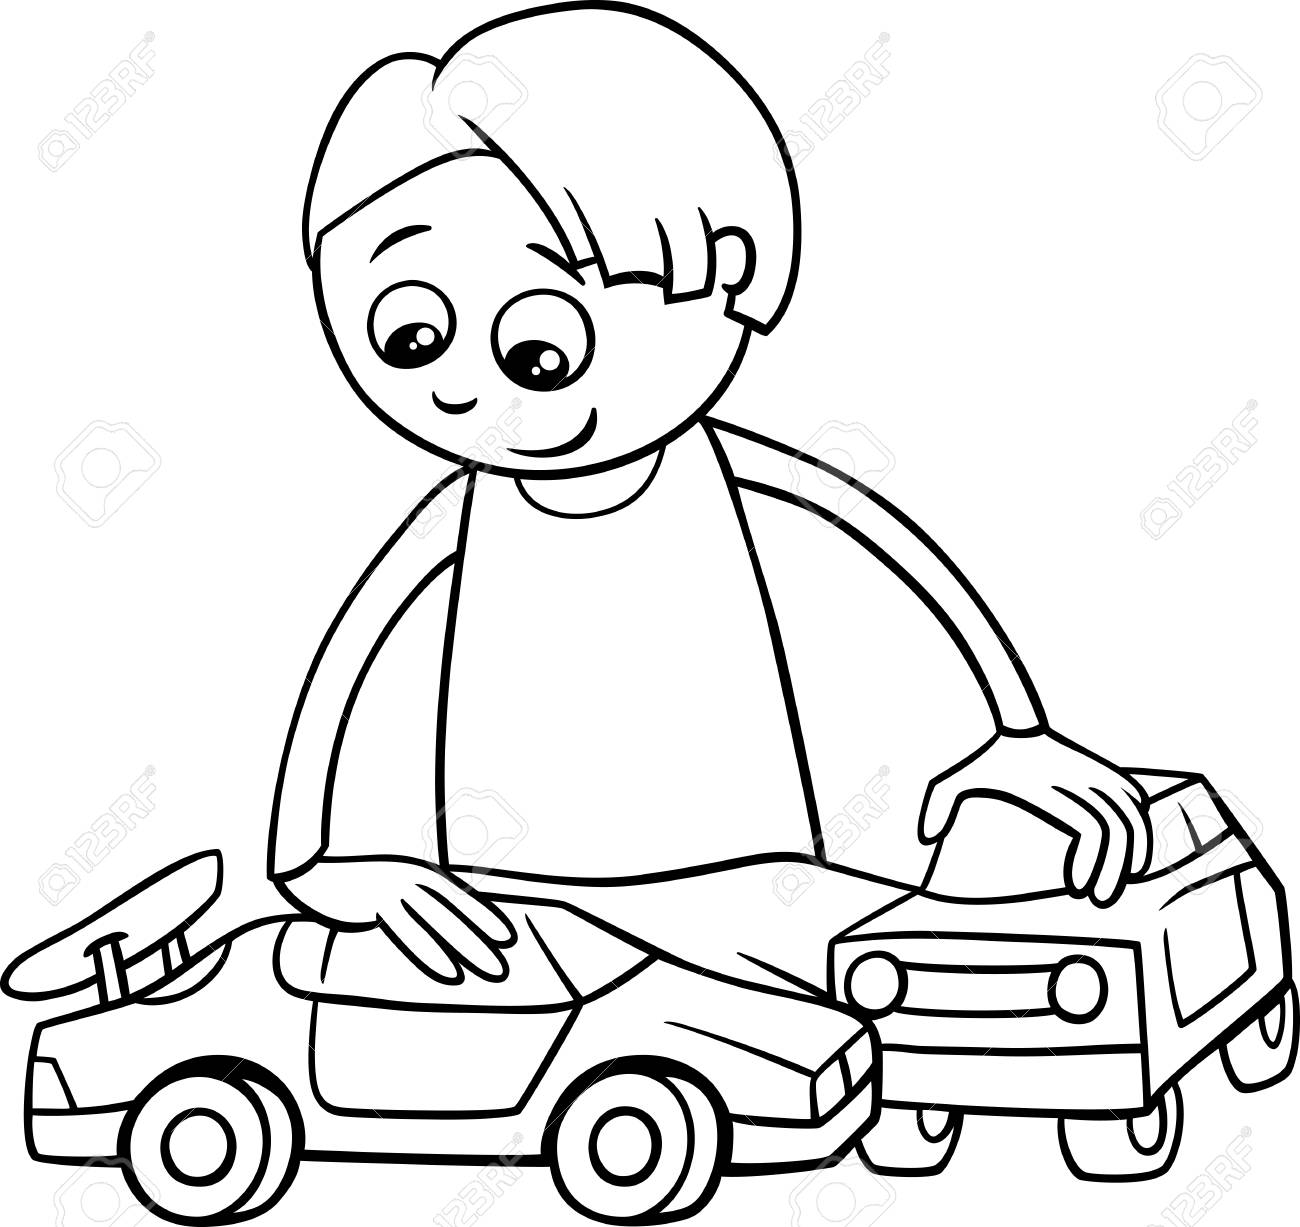 Black And White Cartoon Illustration Of Happy Boy With Toy Cars For Coloring Book Stock Vector